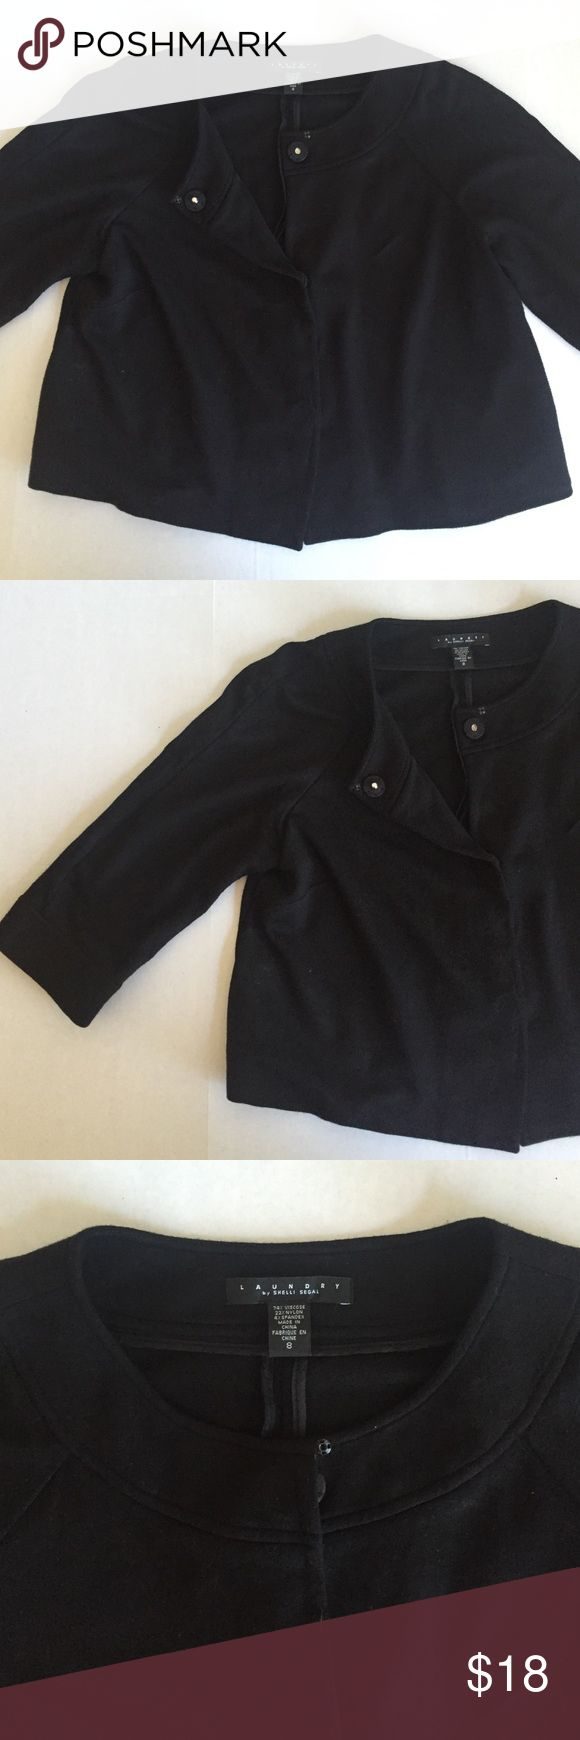 Laundry Shelli Segal Swing Jacket Classic black knit swing coat from Laundry. Super versatile! Cute with work pants or with jeans. 3/4 length sleeves and large snap closure in front. No flaws or snags. Fits true to size. Laundry by Shelli Segal Jackets & Coats